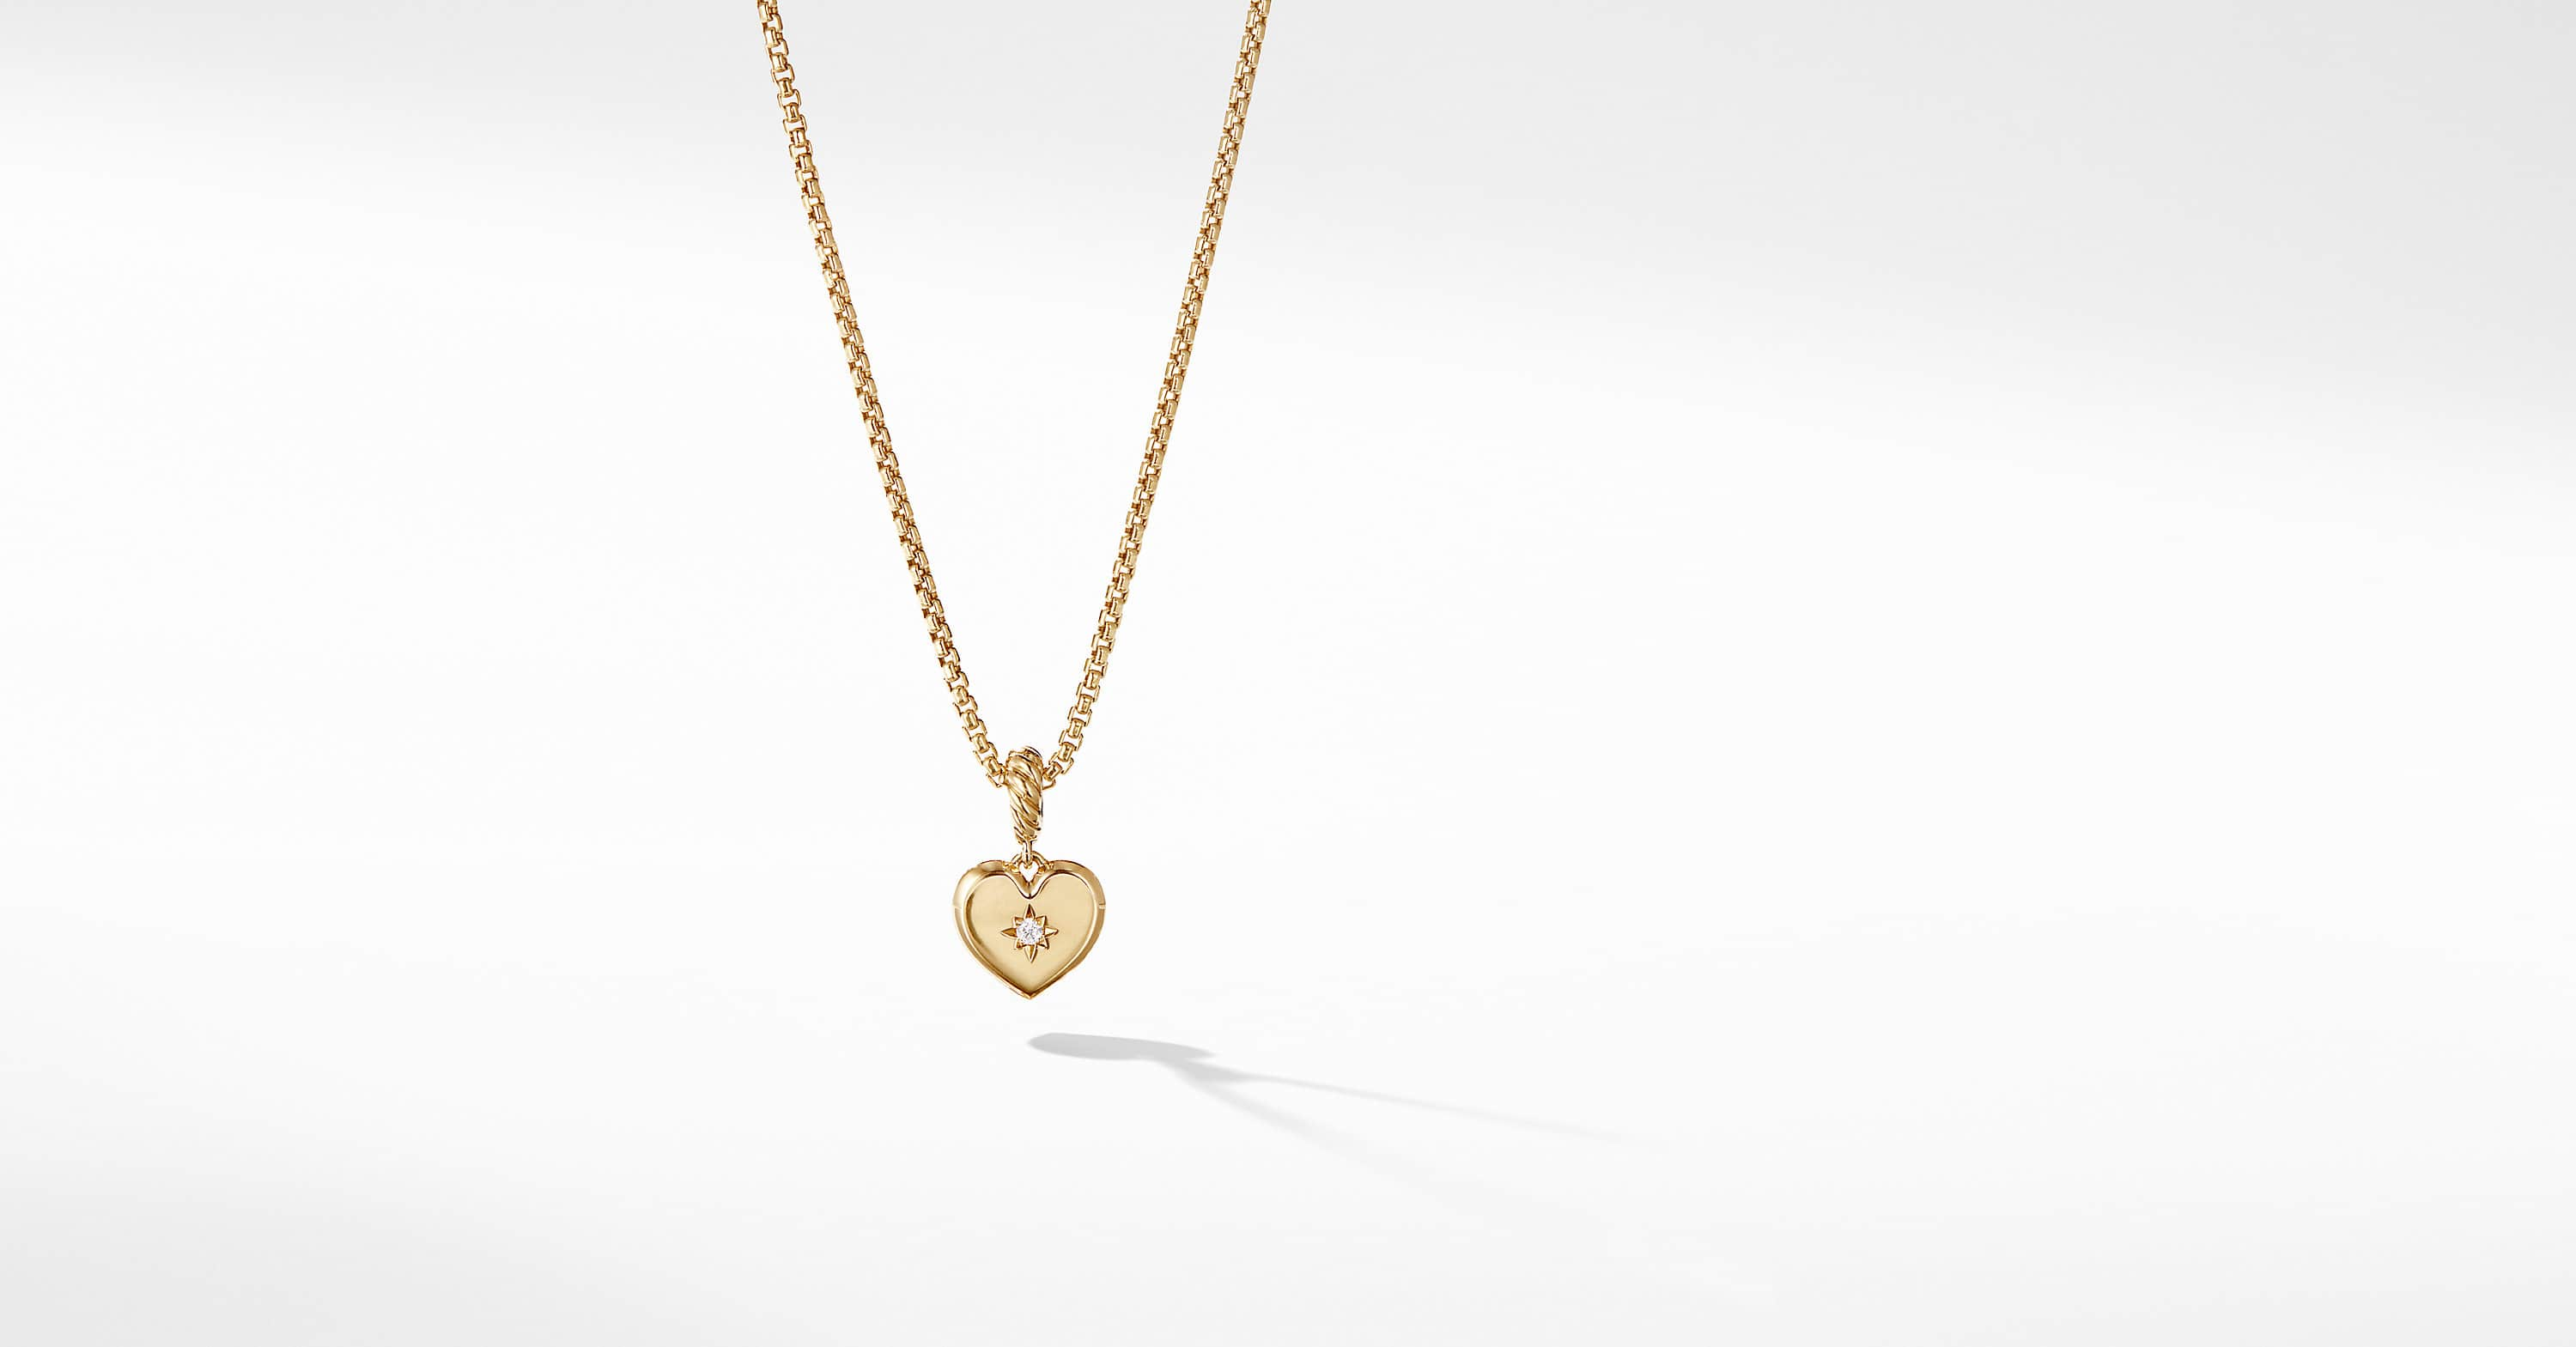 Compass Heart Pendant in 18K Yellow Gold with Center Diamond